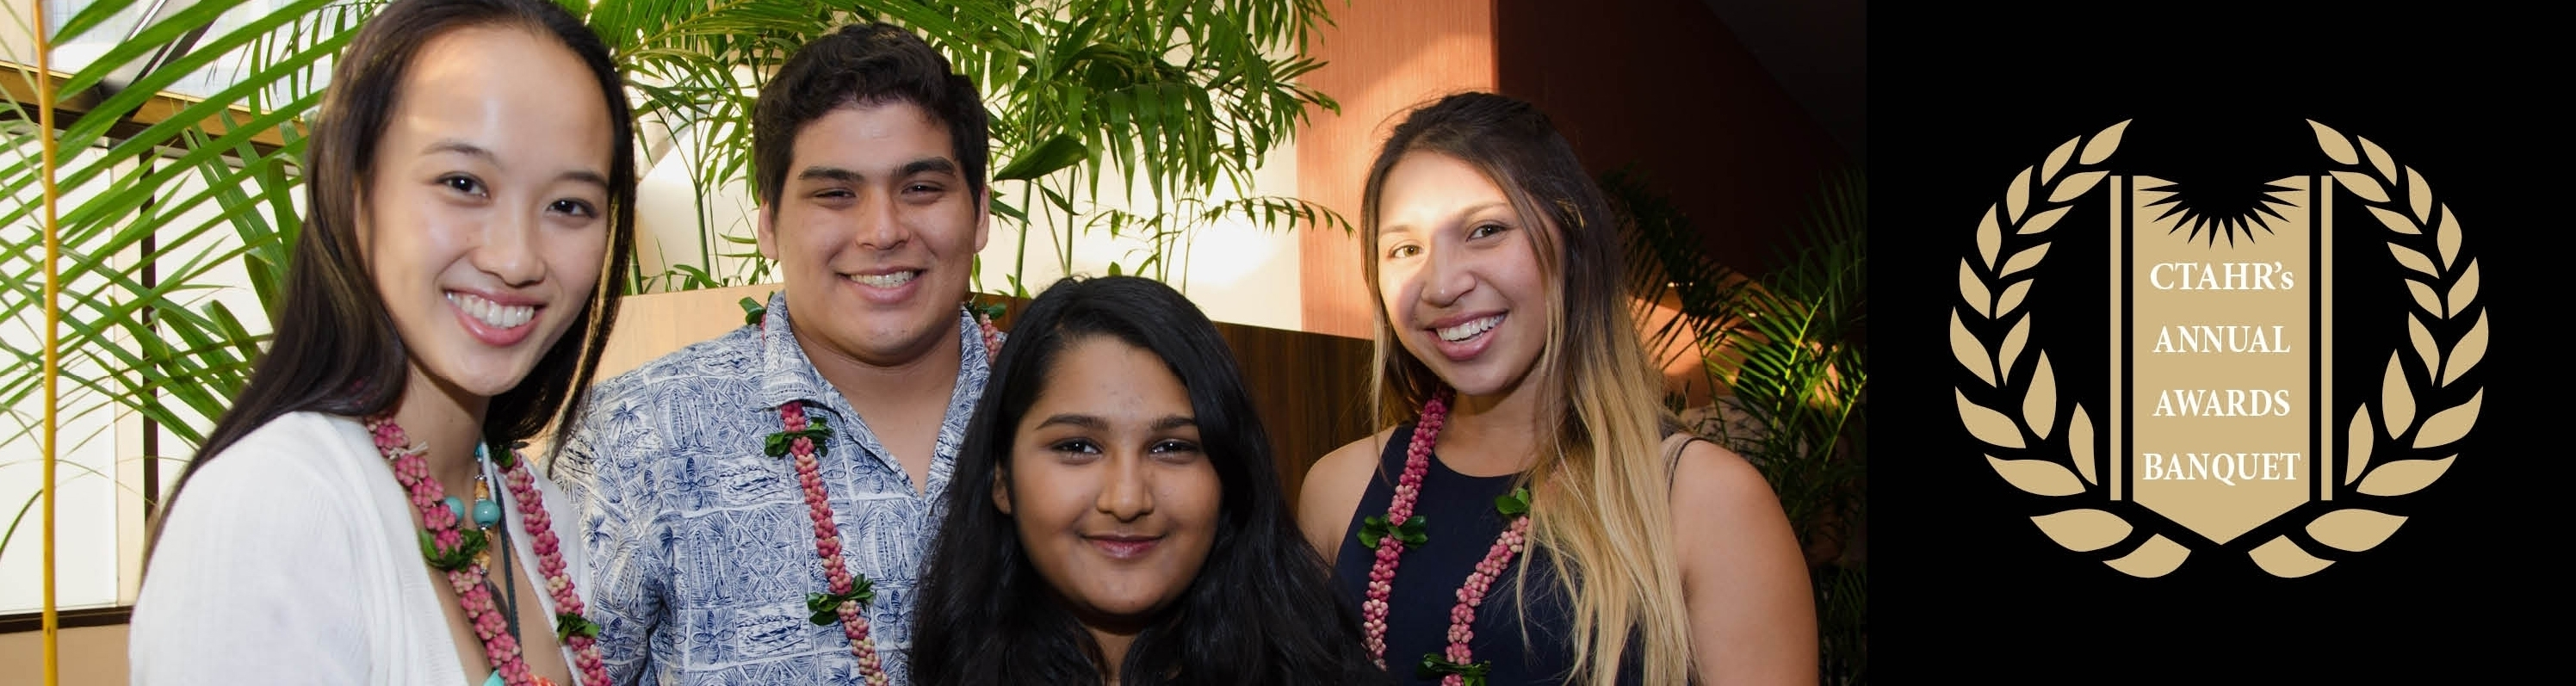 four smiling student next to CTAHR Banquet mark